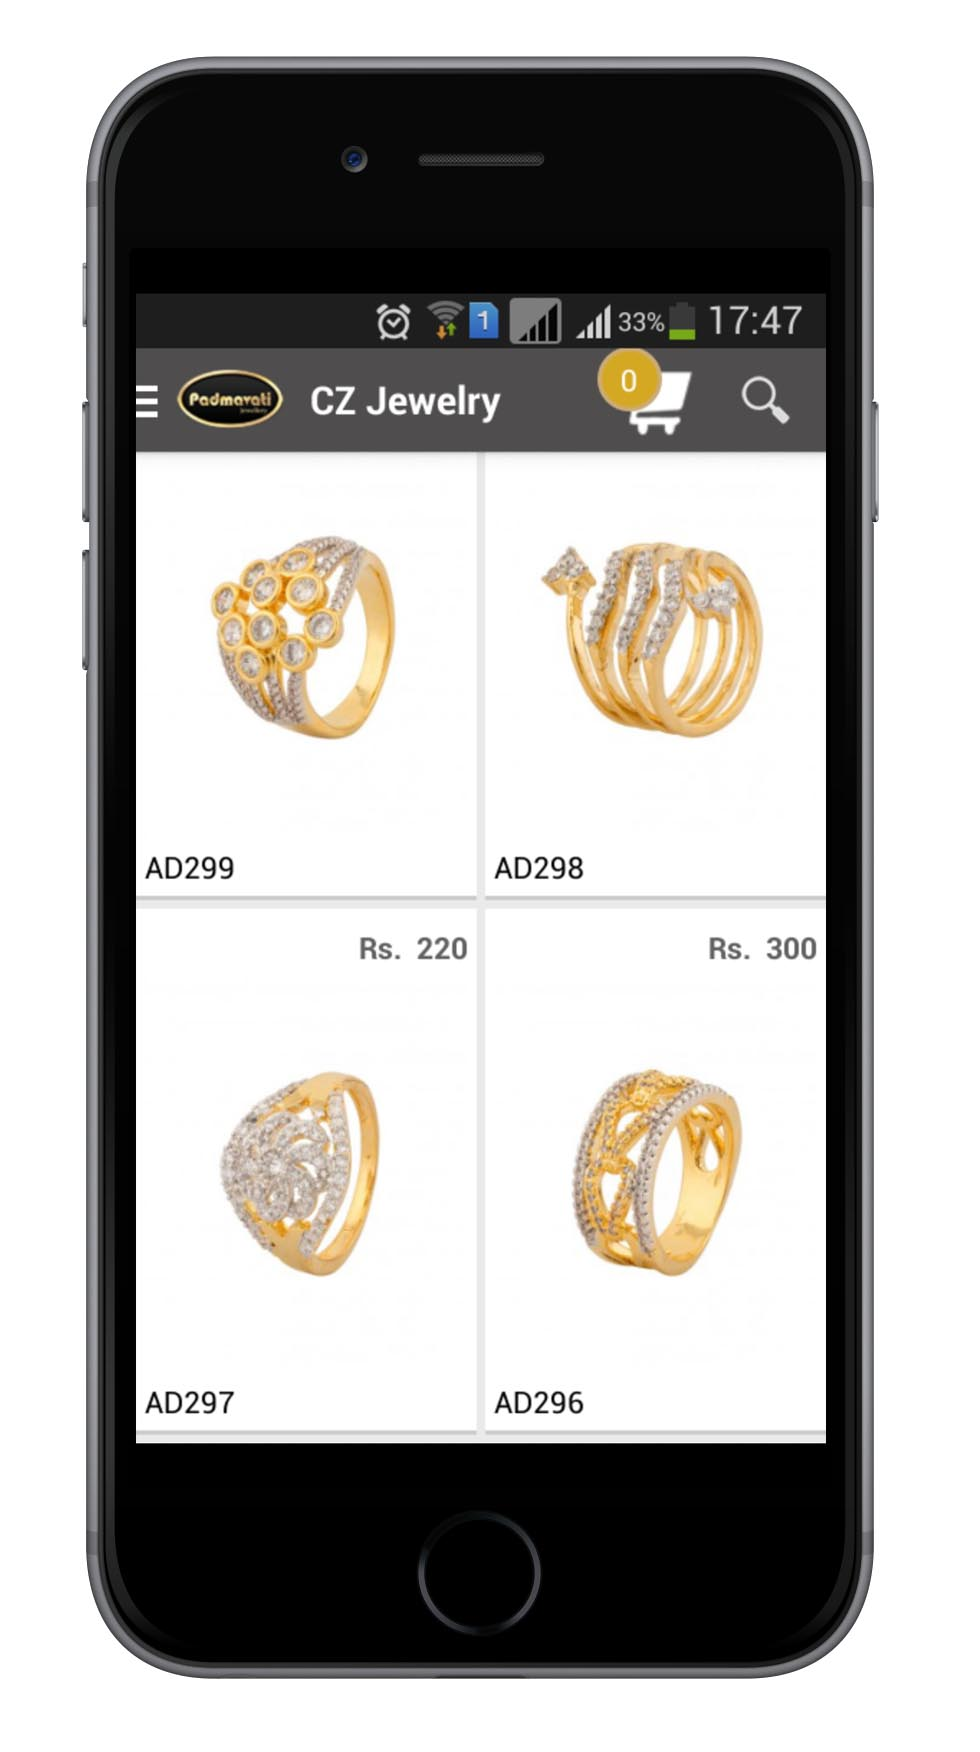 Jewellery Website And Mobile Application Development